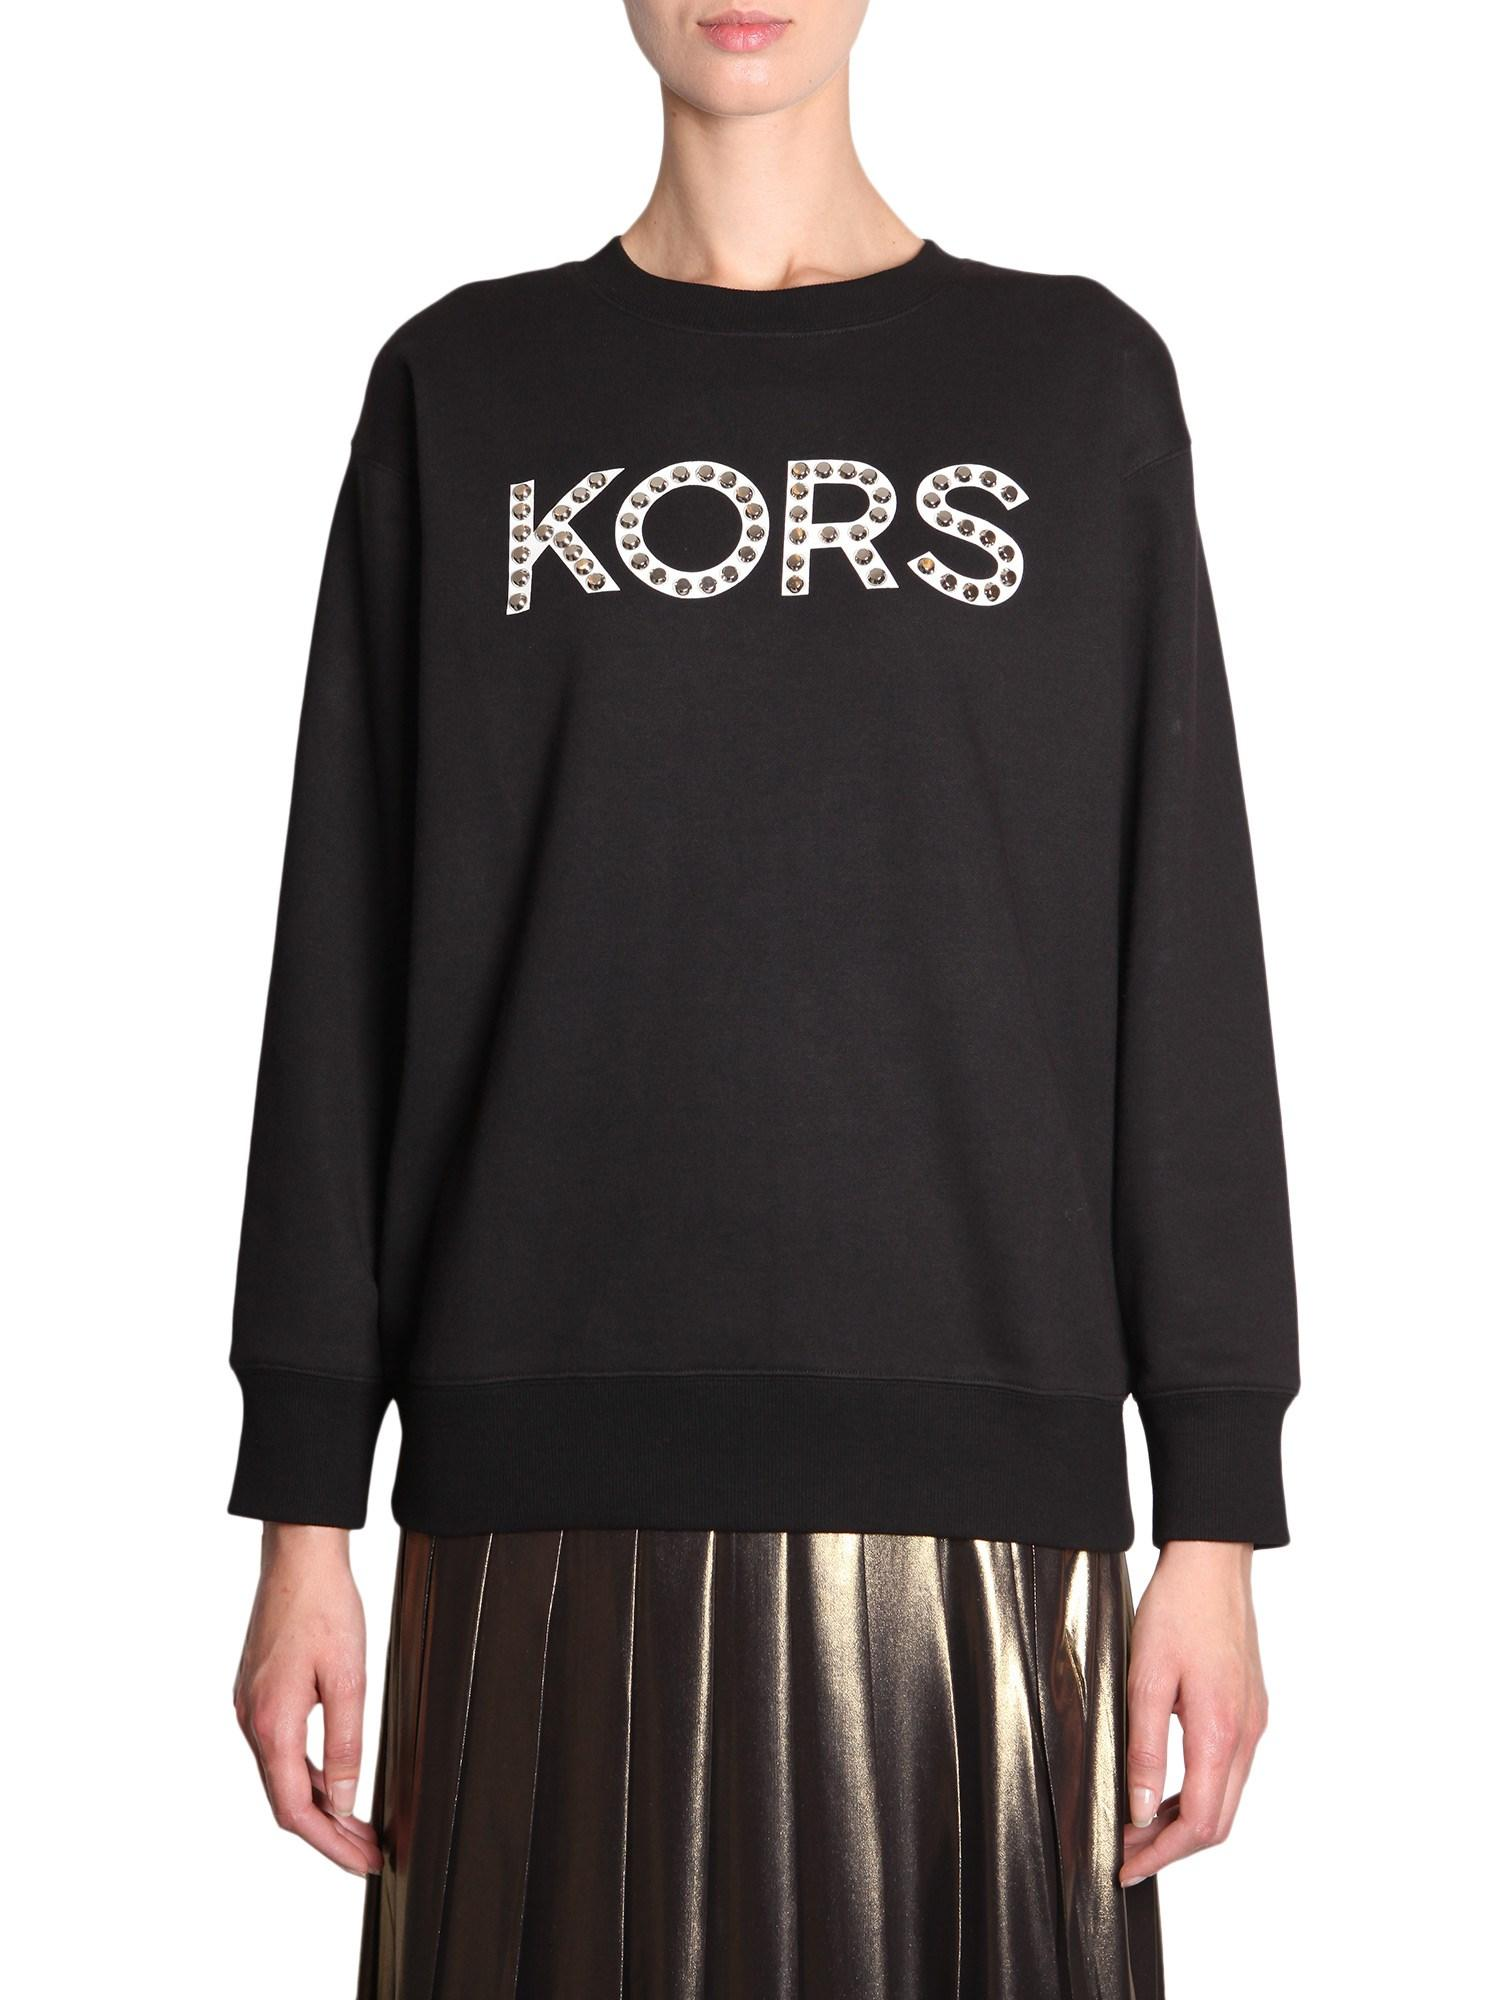 c2327c751ab MICHAEL Michael Kors - Black Cotton Mixed Sweatshirt With Studded Logo -  Lyst. View fullscreen